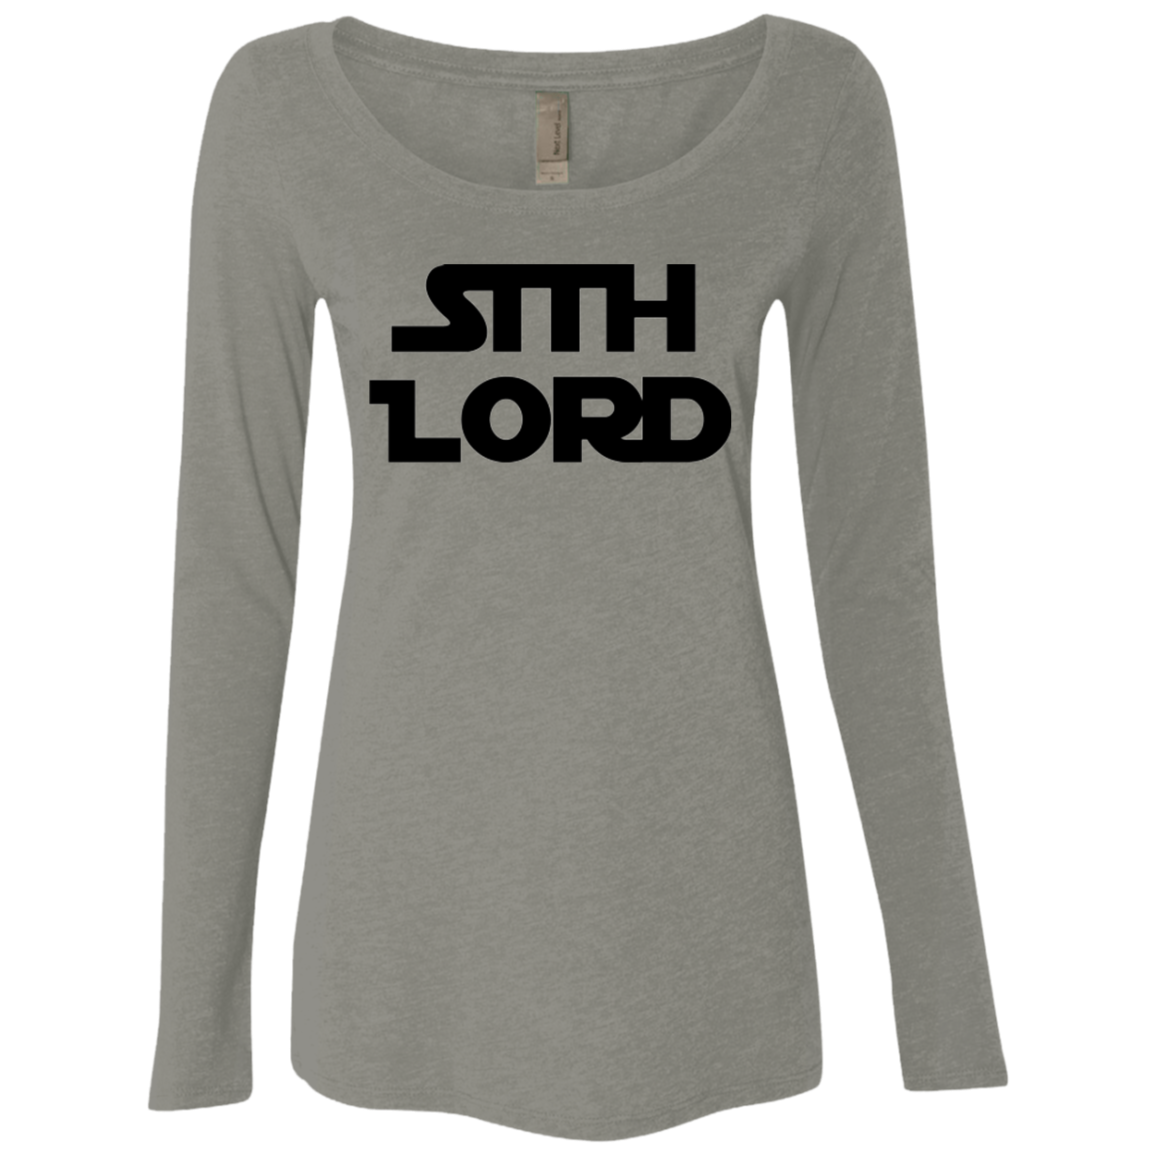 Sith Lord Star Wars Women's Long Sleeve Tee